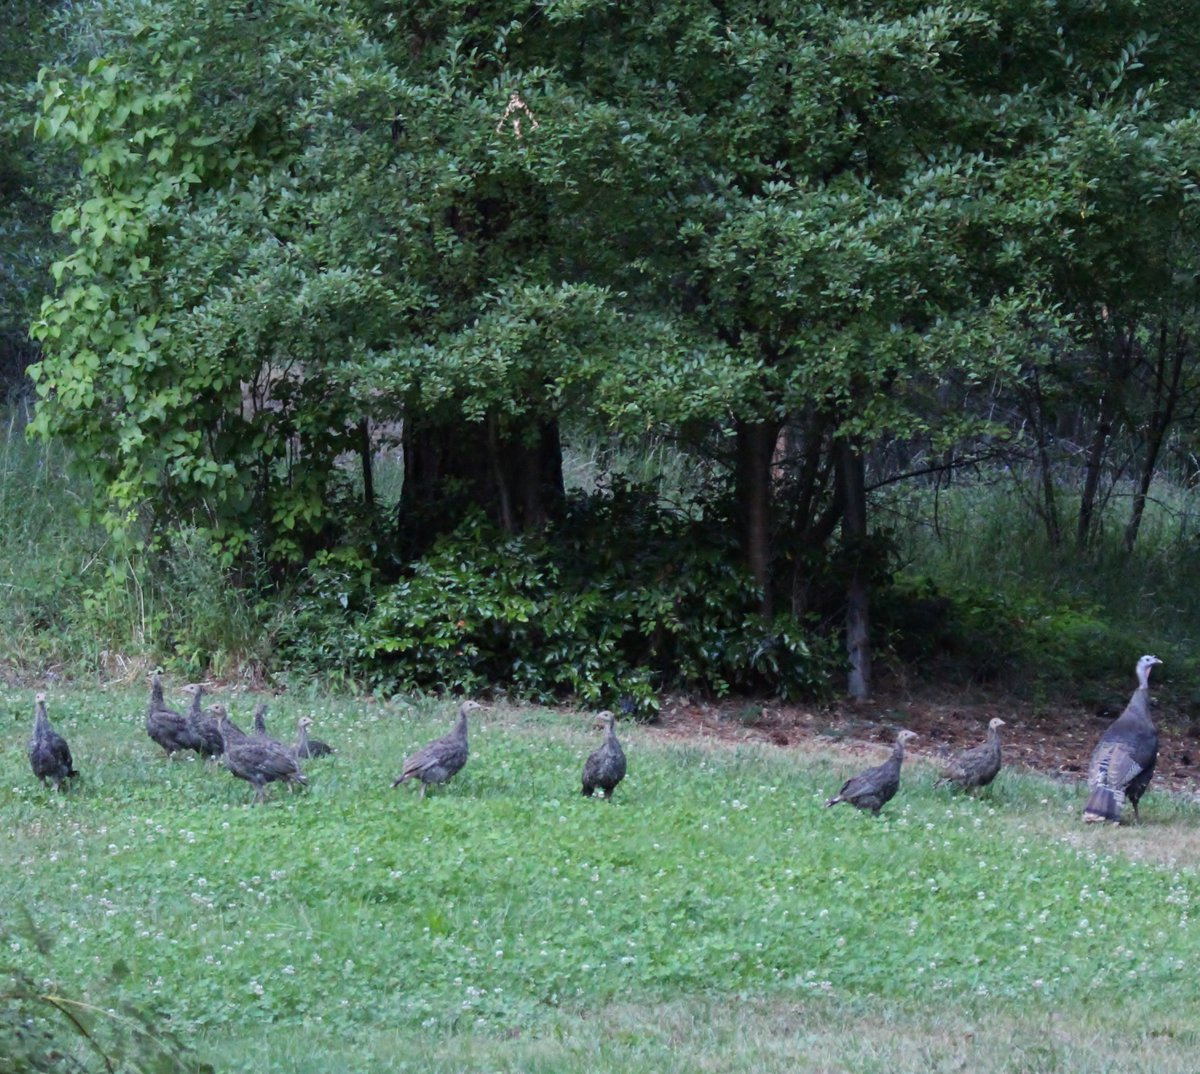 Great wild #turkey mom with all ten poults  #wildlife<br>http://pic.twitter.com/VipQwUuq8Q